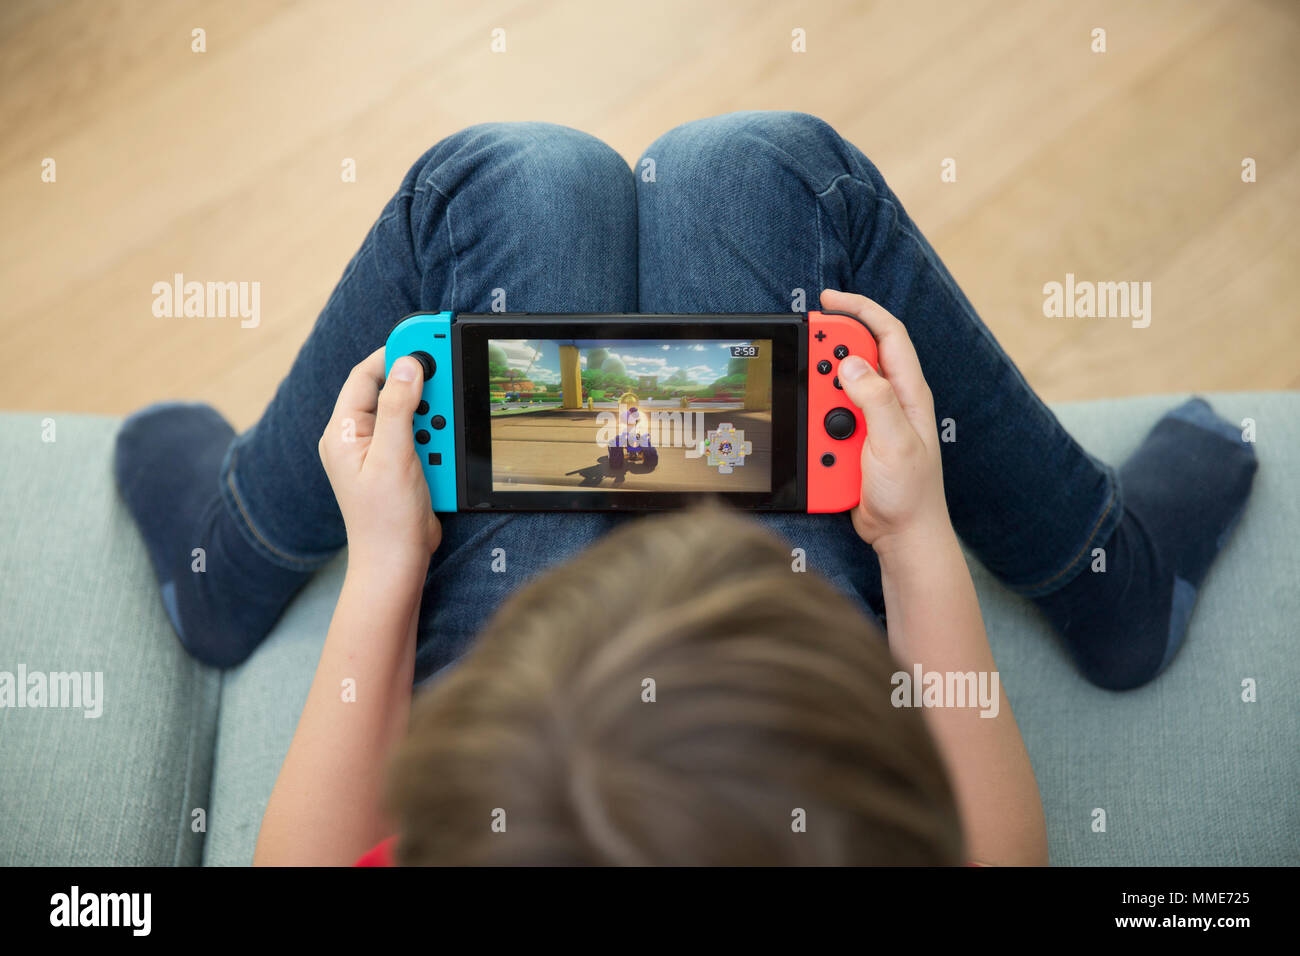 CHILD PLAYING VIDEO GAME - Stock Image